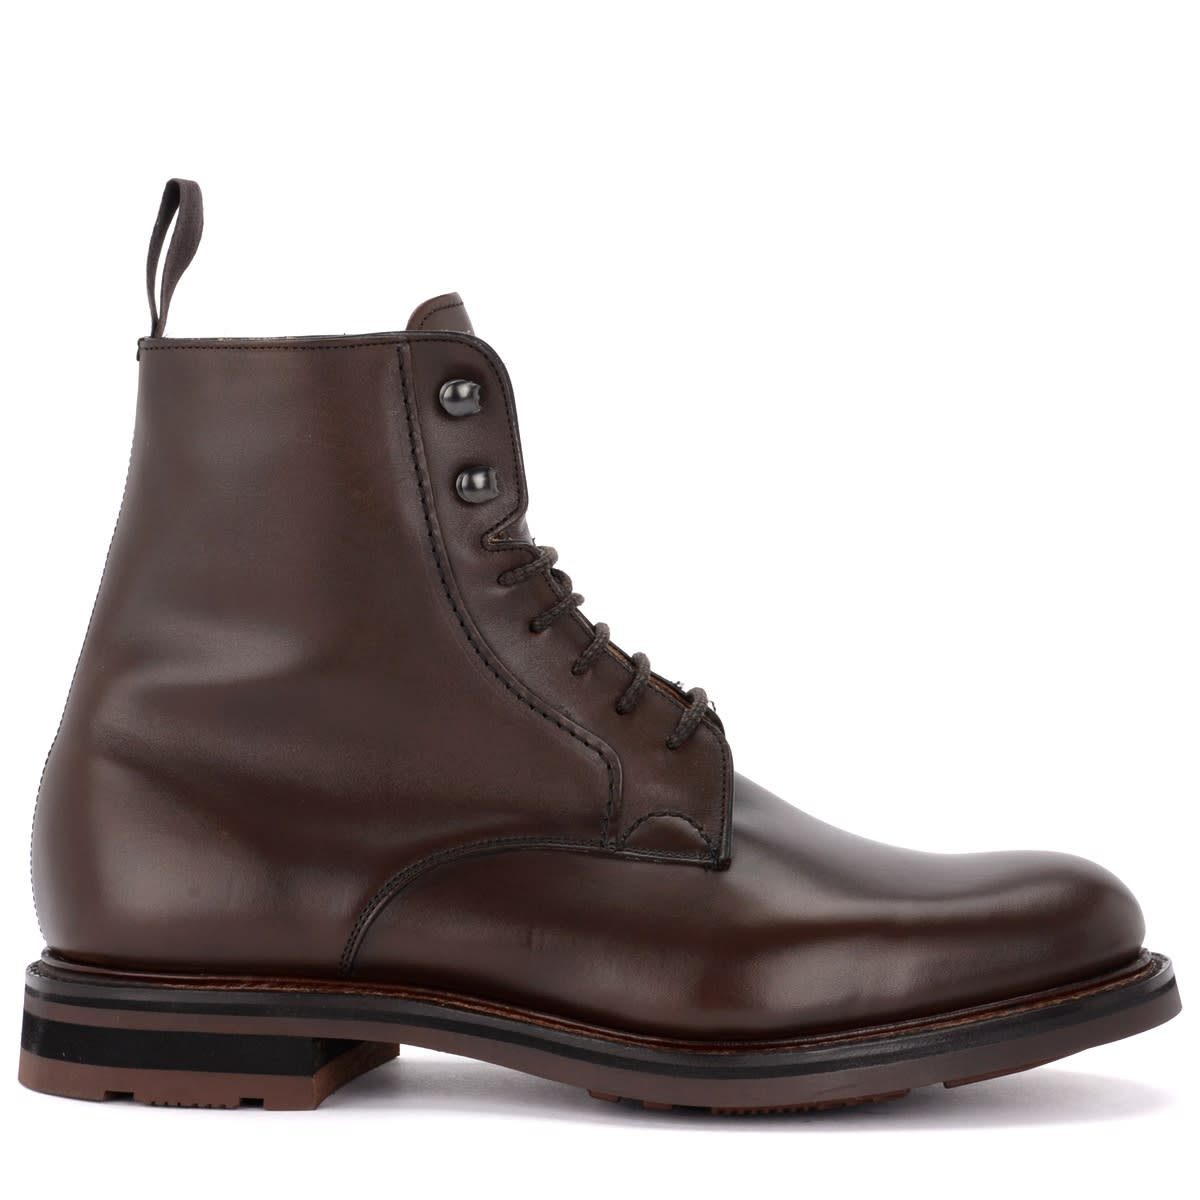 Churchs Wootton Ankle Boot In Fine Brown Calf Leather